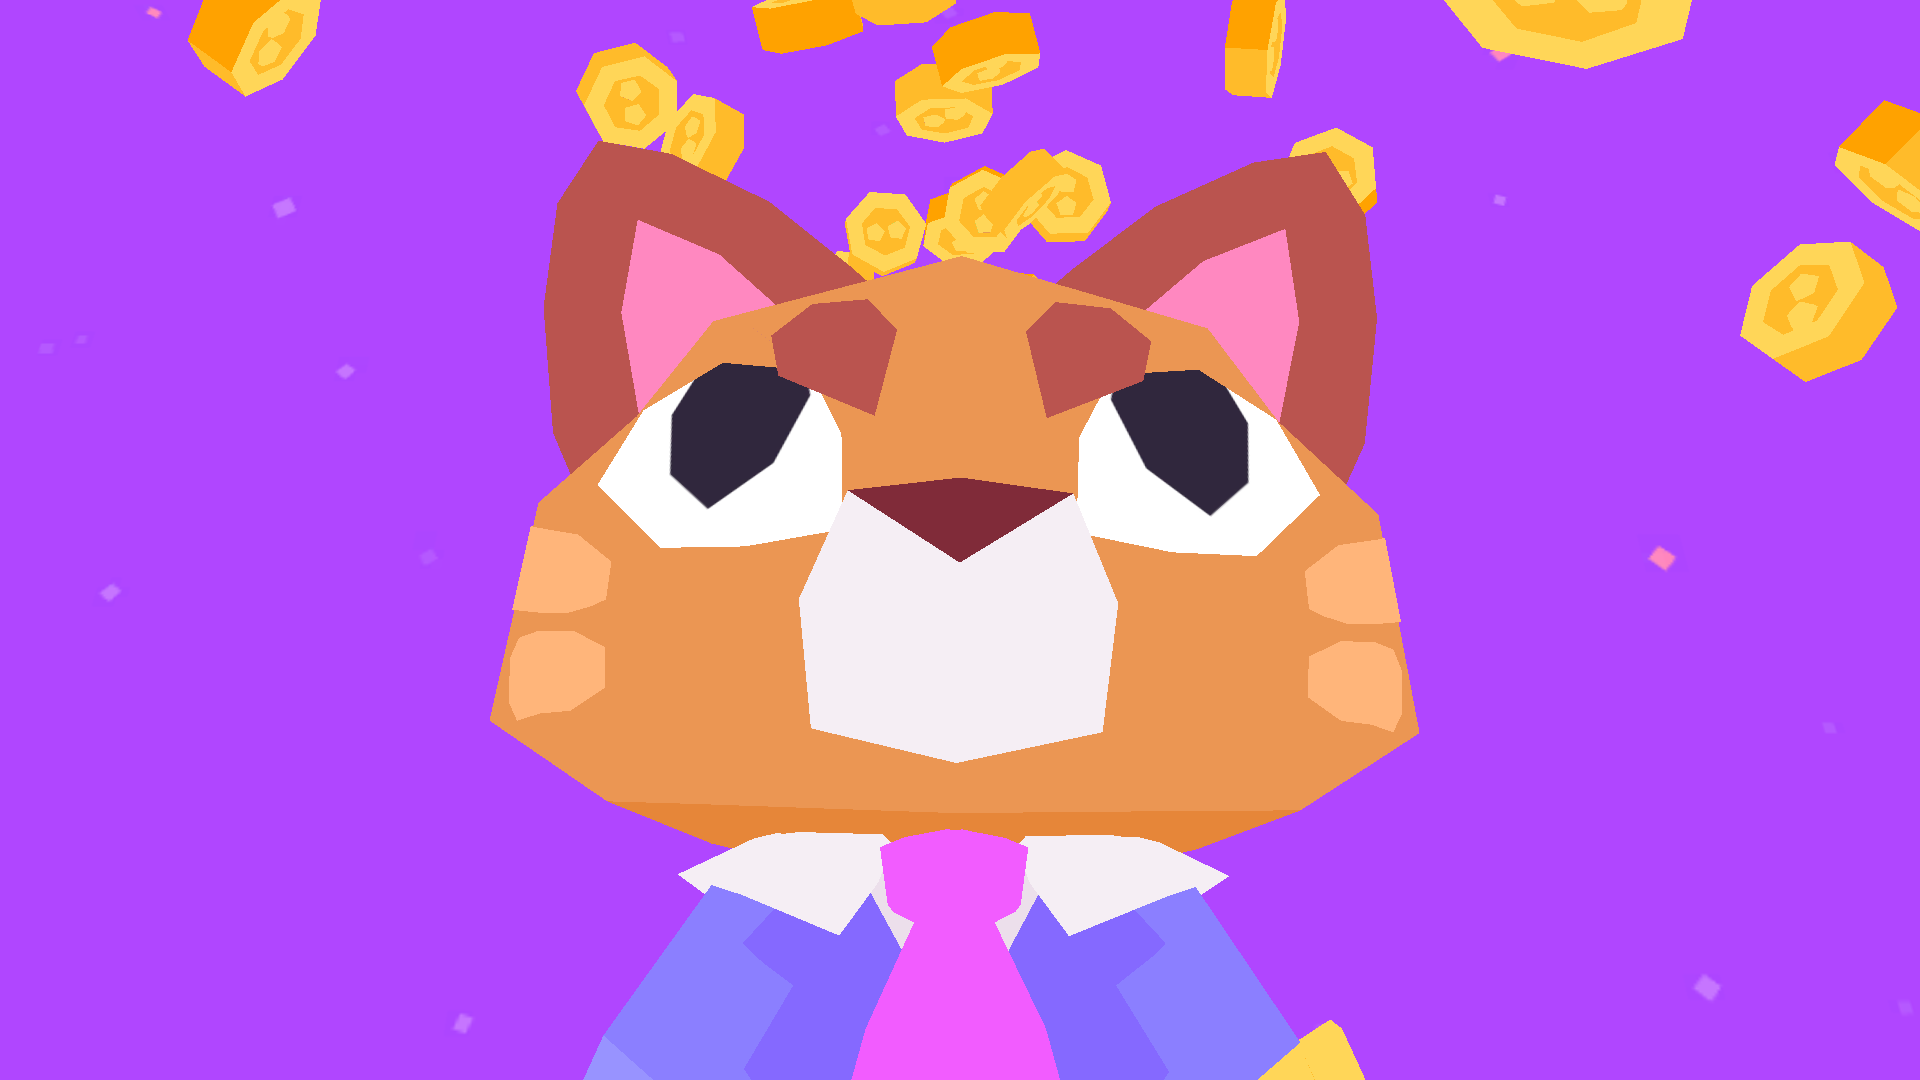 An image of Button City's antagonist on a purple background with money raining behind him